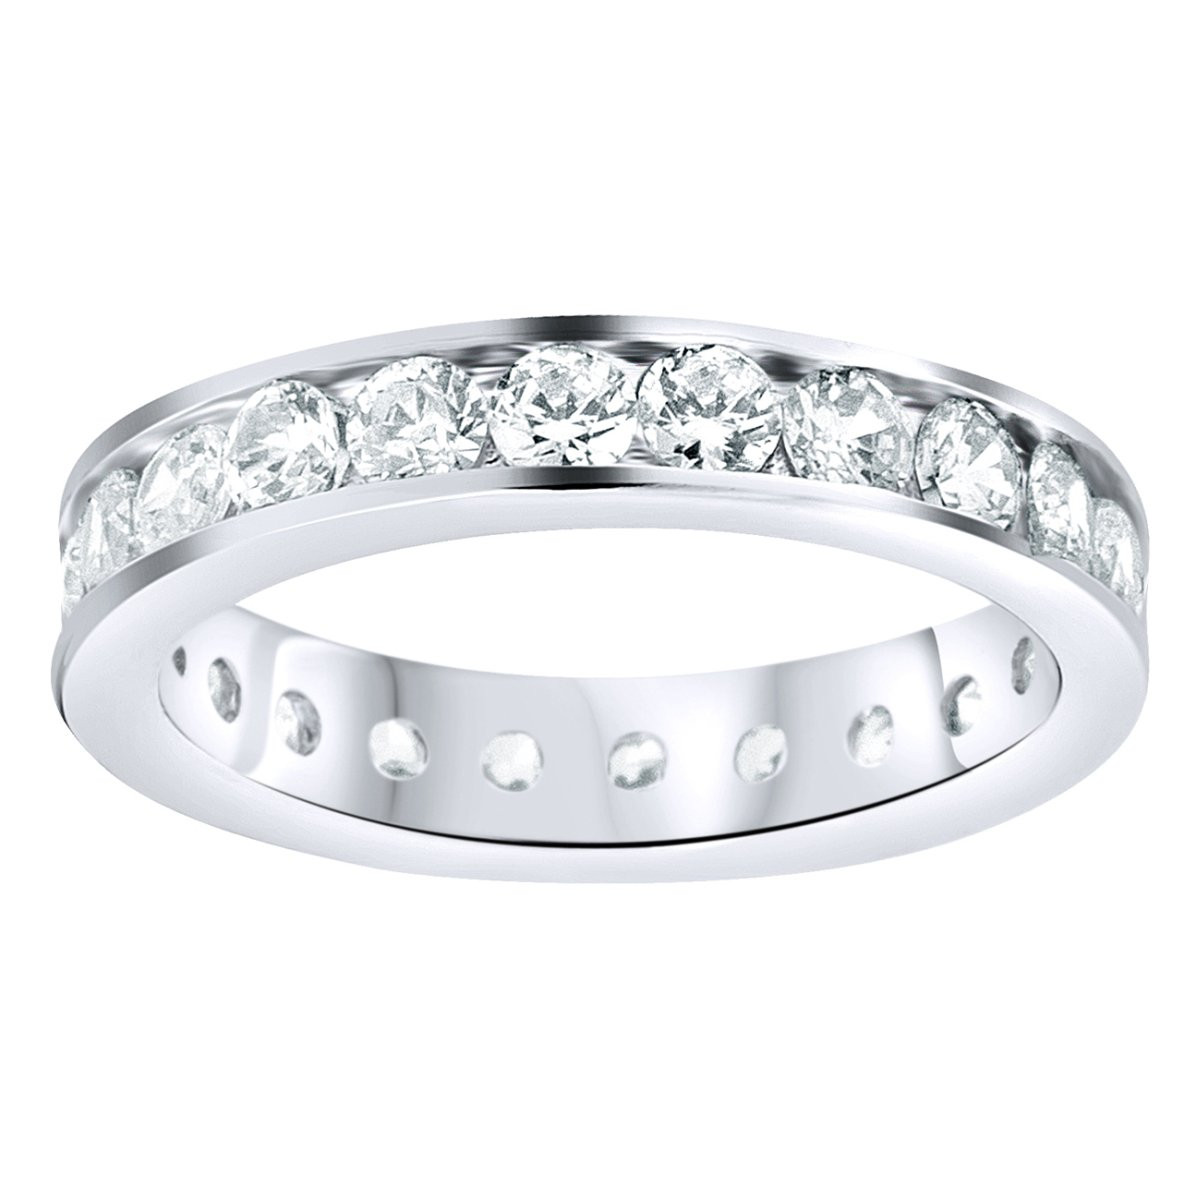 Iced Out Sterling 925 Silver Eternity Ring - Channel Set - 10